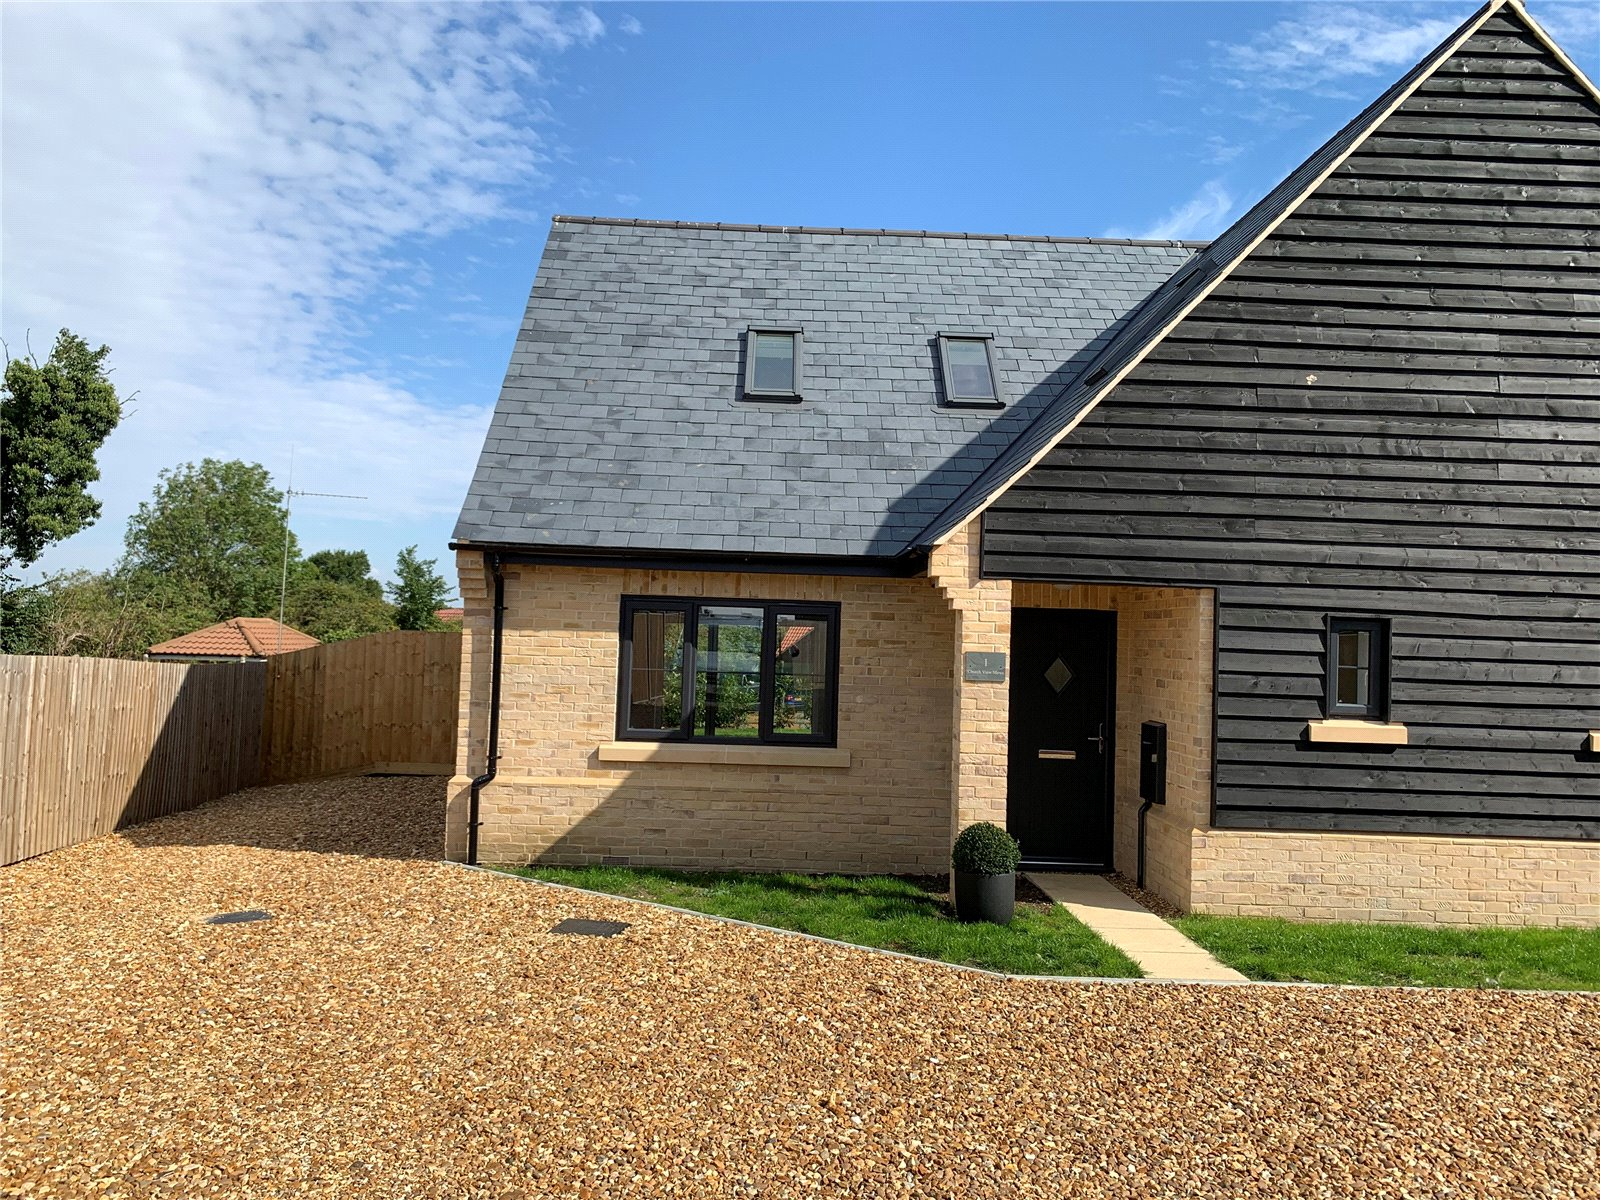 3 bed house for sale in Pidley, PE28 3DD  - Property Image 1